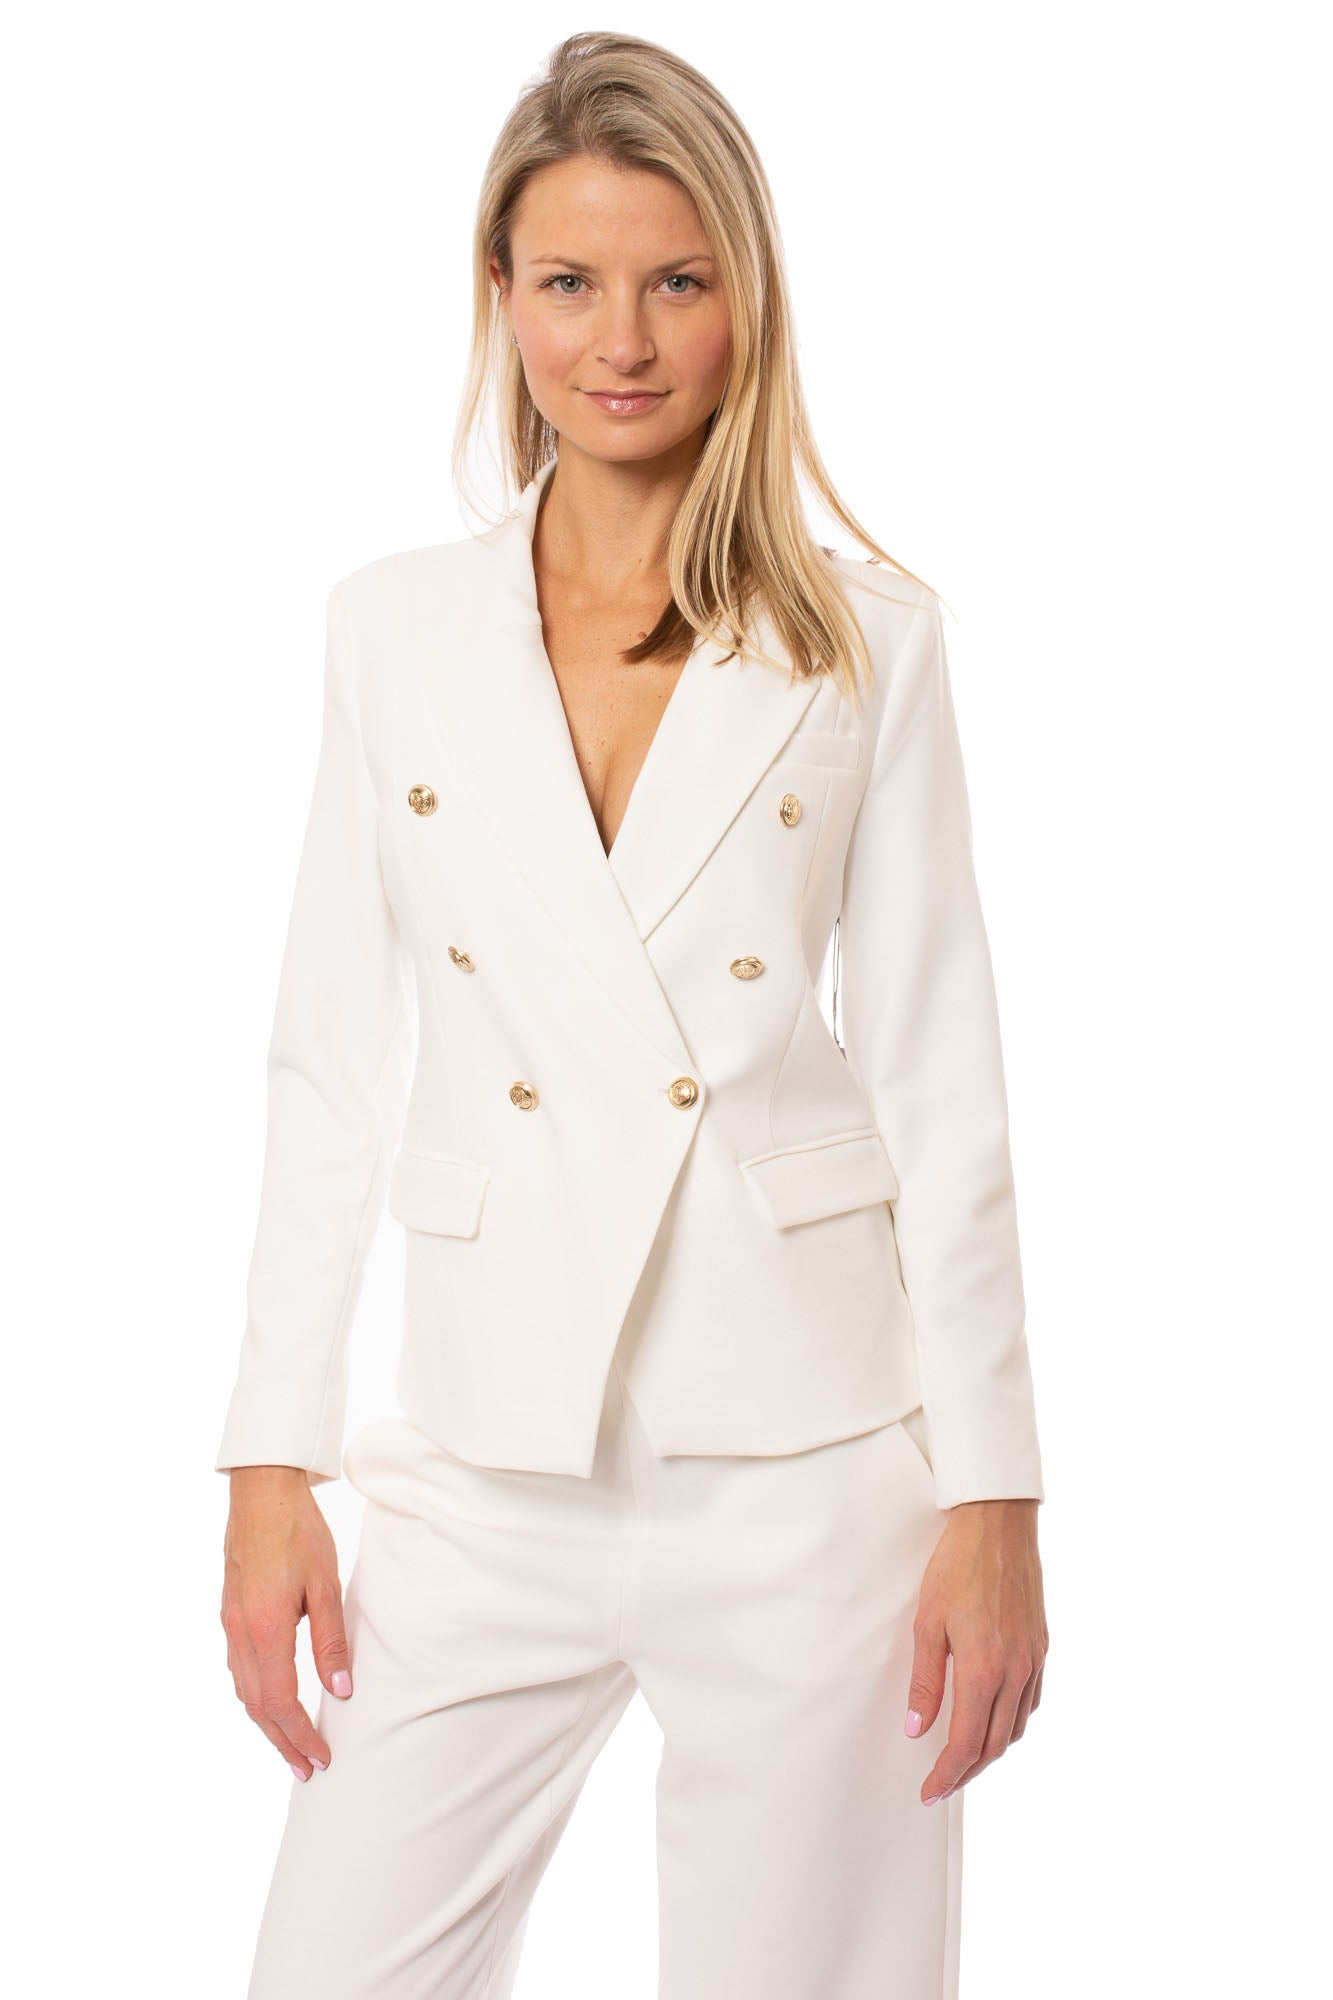 Tart Collections - Sabrina Blazer (T90733, White)